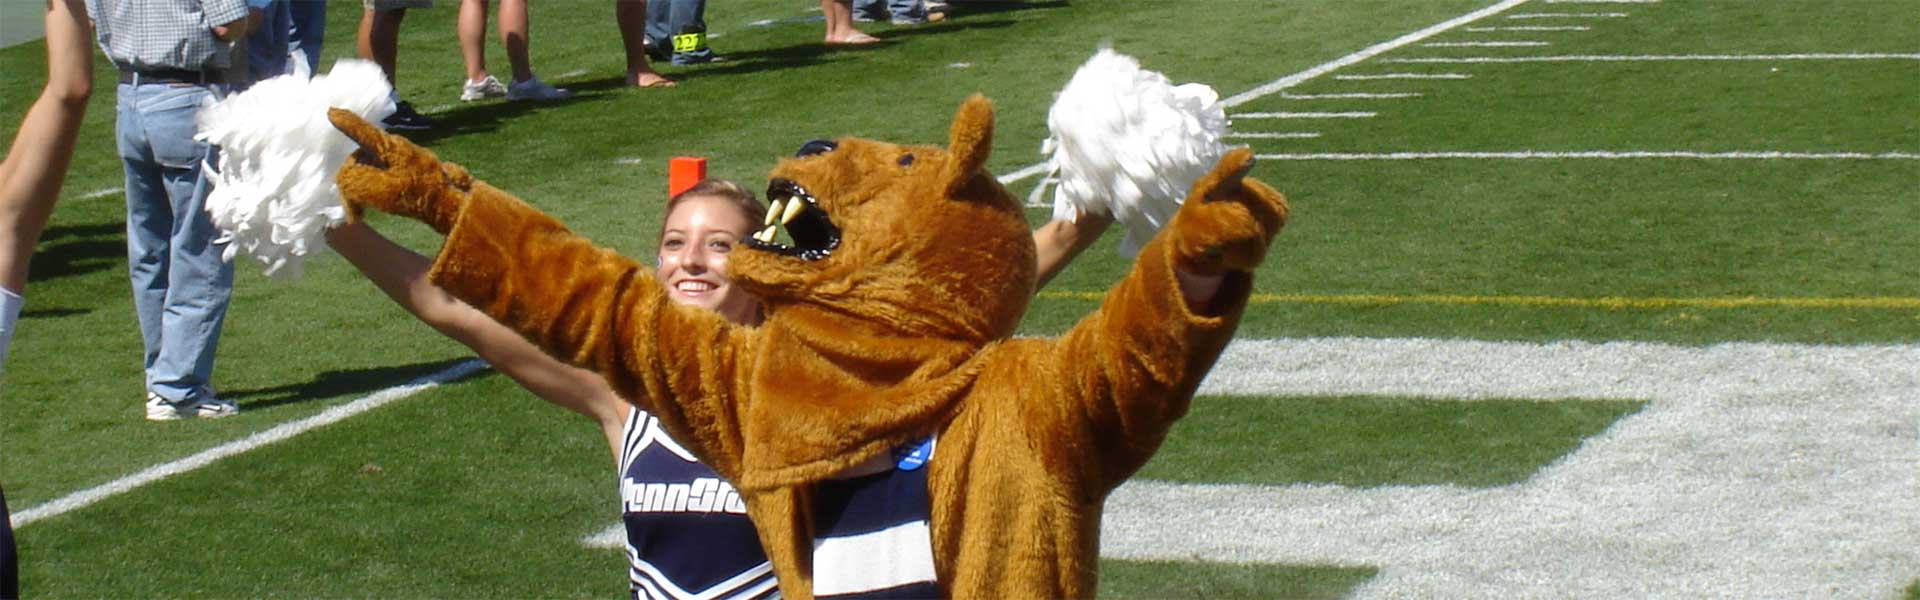 Nittany Lion and cheerleader